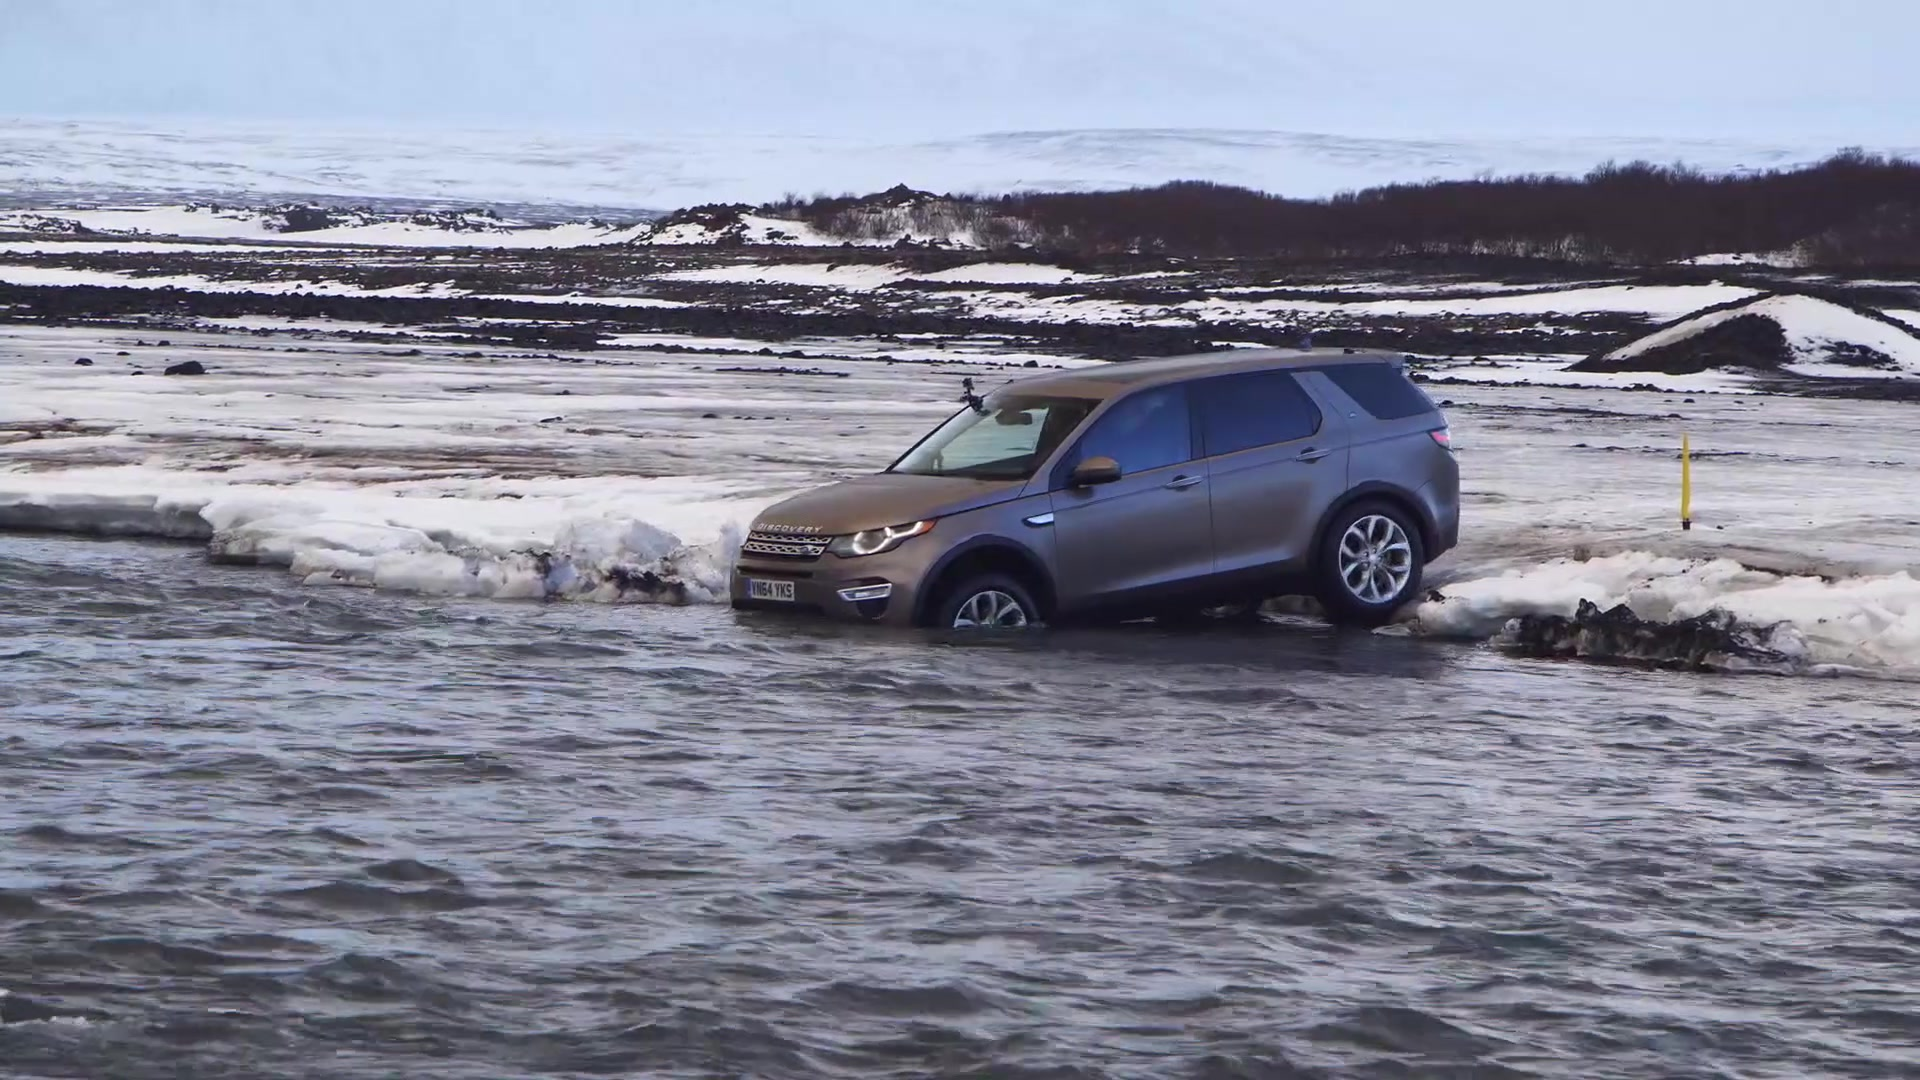 Which is faster a Land Rover Discovery Sport or sled dogs Autoblog